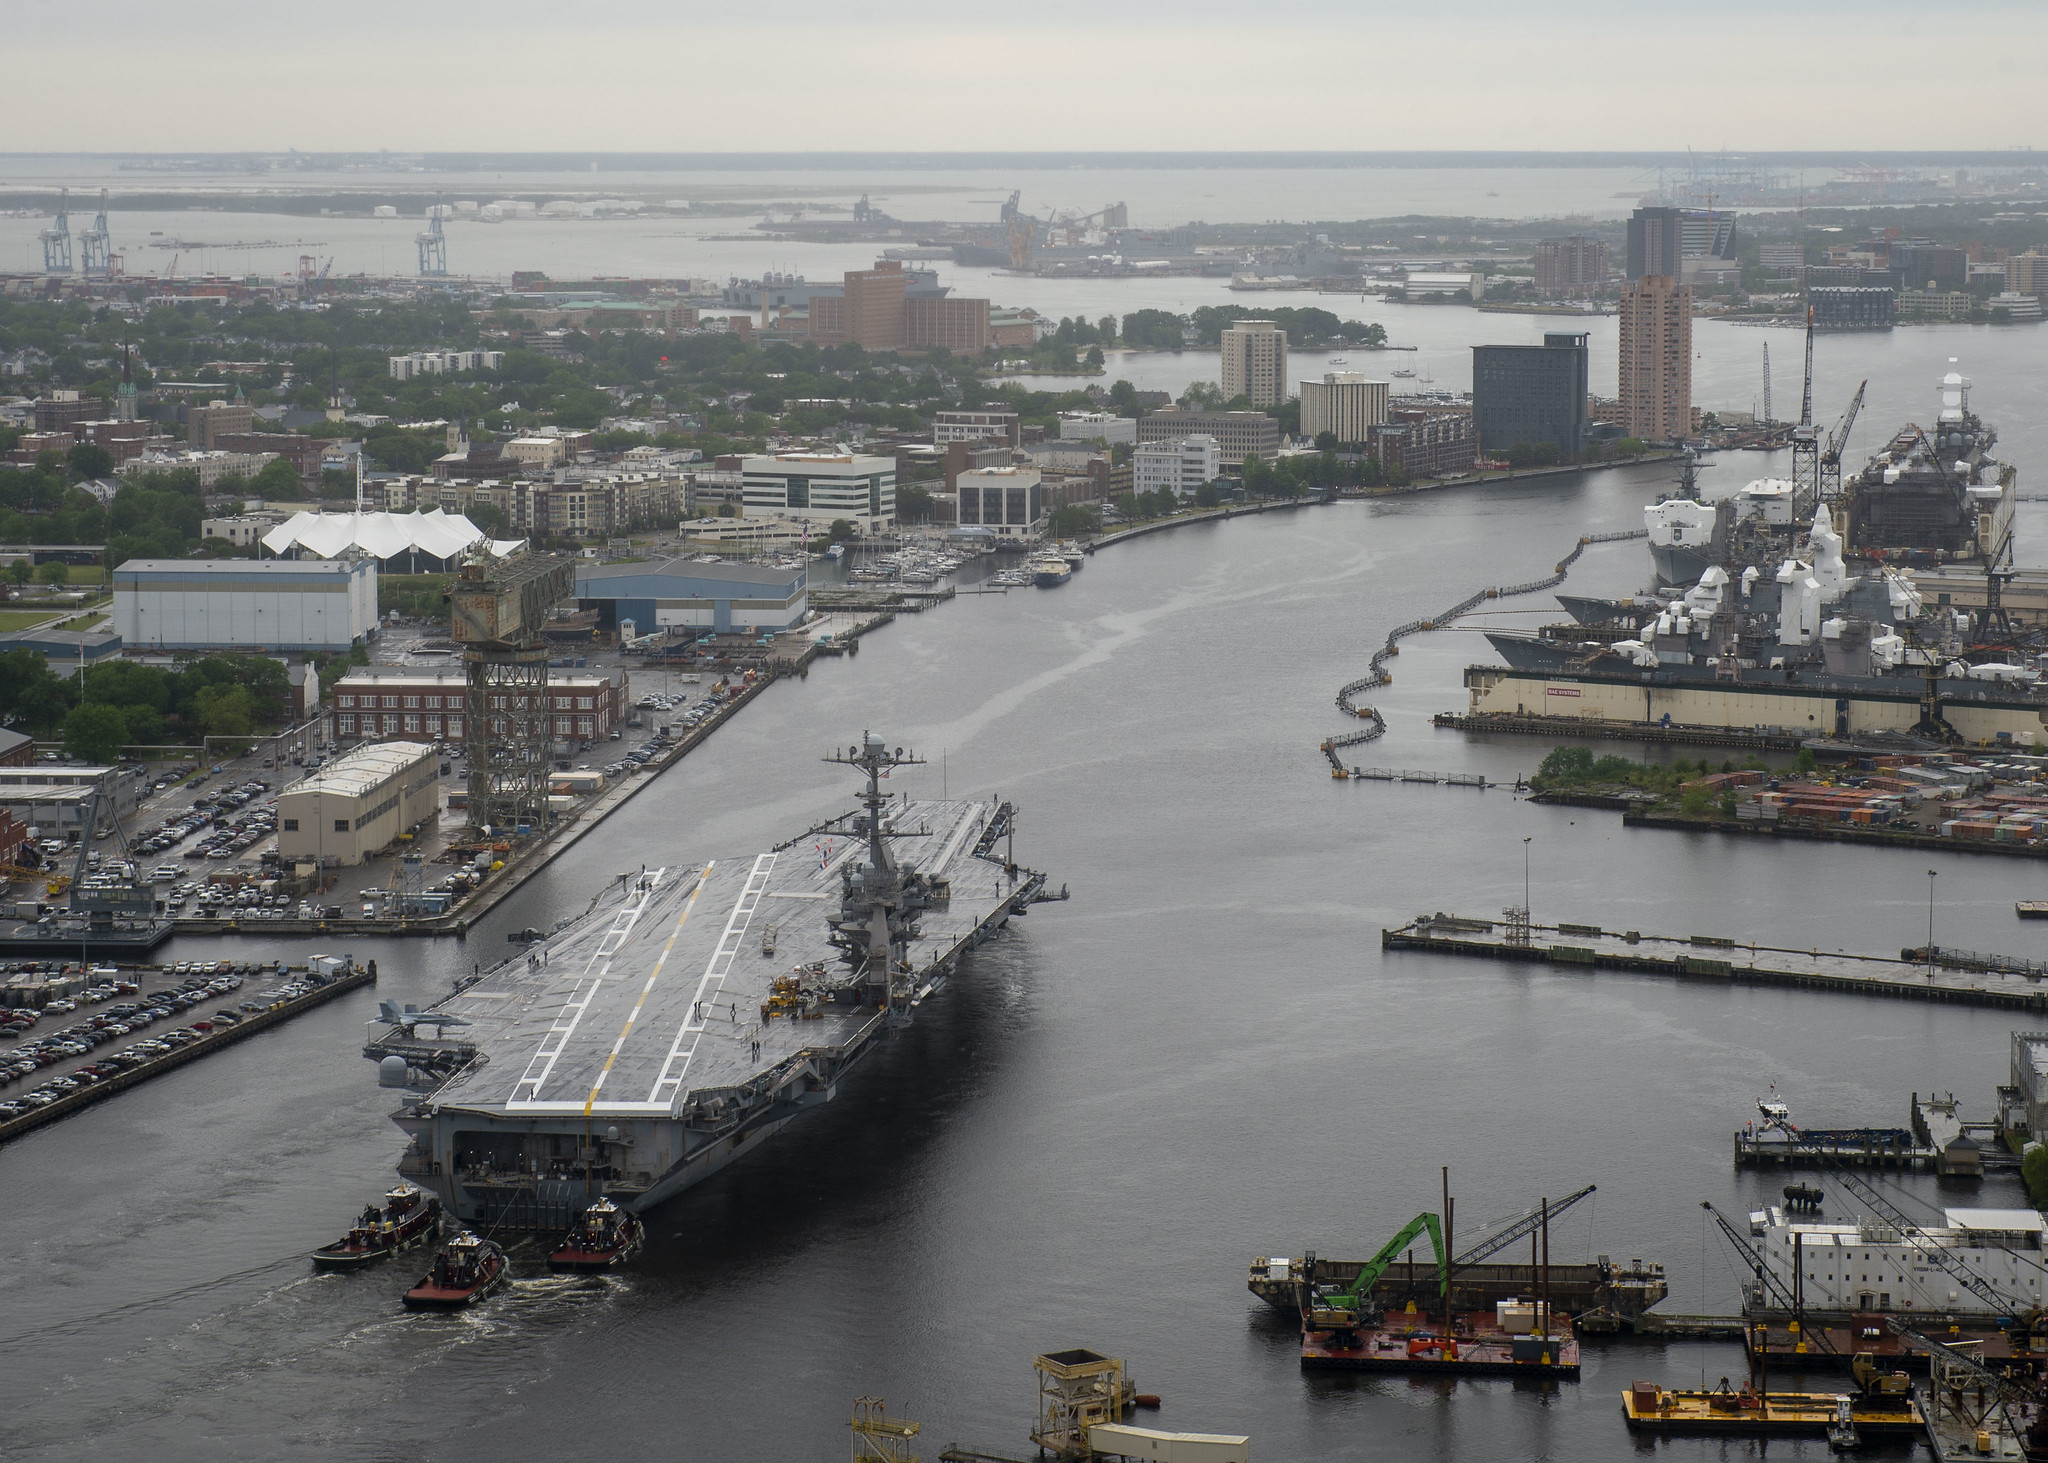 The aircraft carrier USS Harry S. Truman (CVN 75) transits the Elizabeth River on May 12, 2021, as it departs Norfolk Naval Shipyard in Portsmouth, Va., after completing a 10-month scheduled extended carrier incremental availability. (MC2 Class Steven Edgar/Navy)